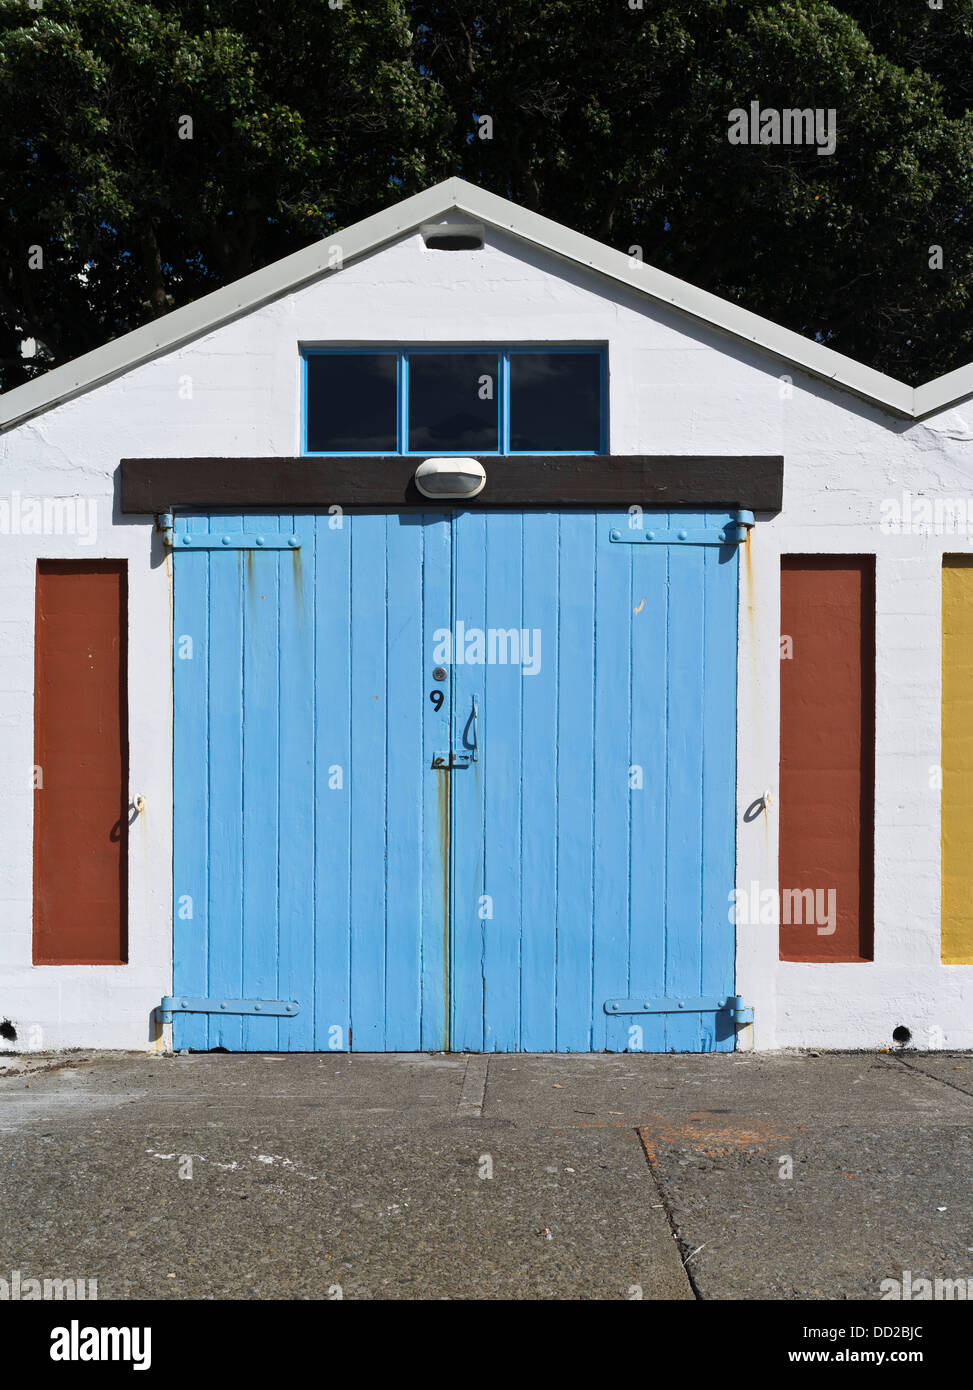 The Boatshed Doors Stock Photos & The Boatshed Doors Stock Images ...